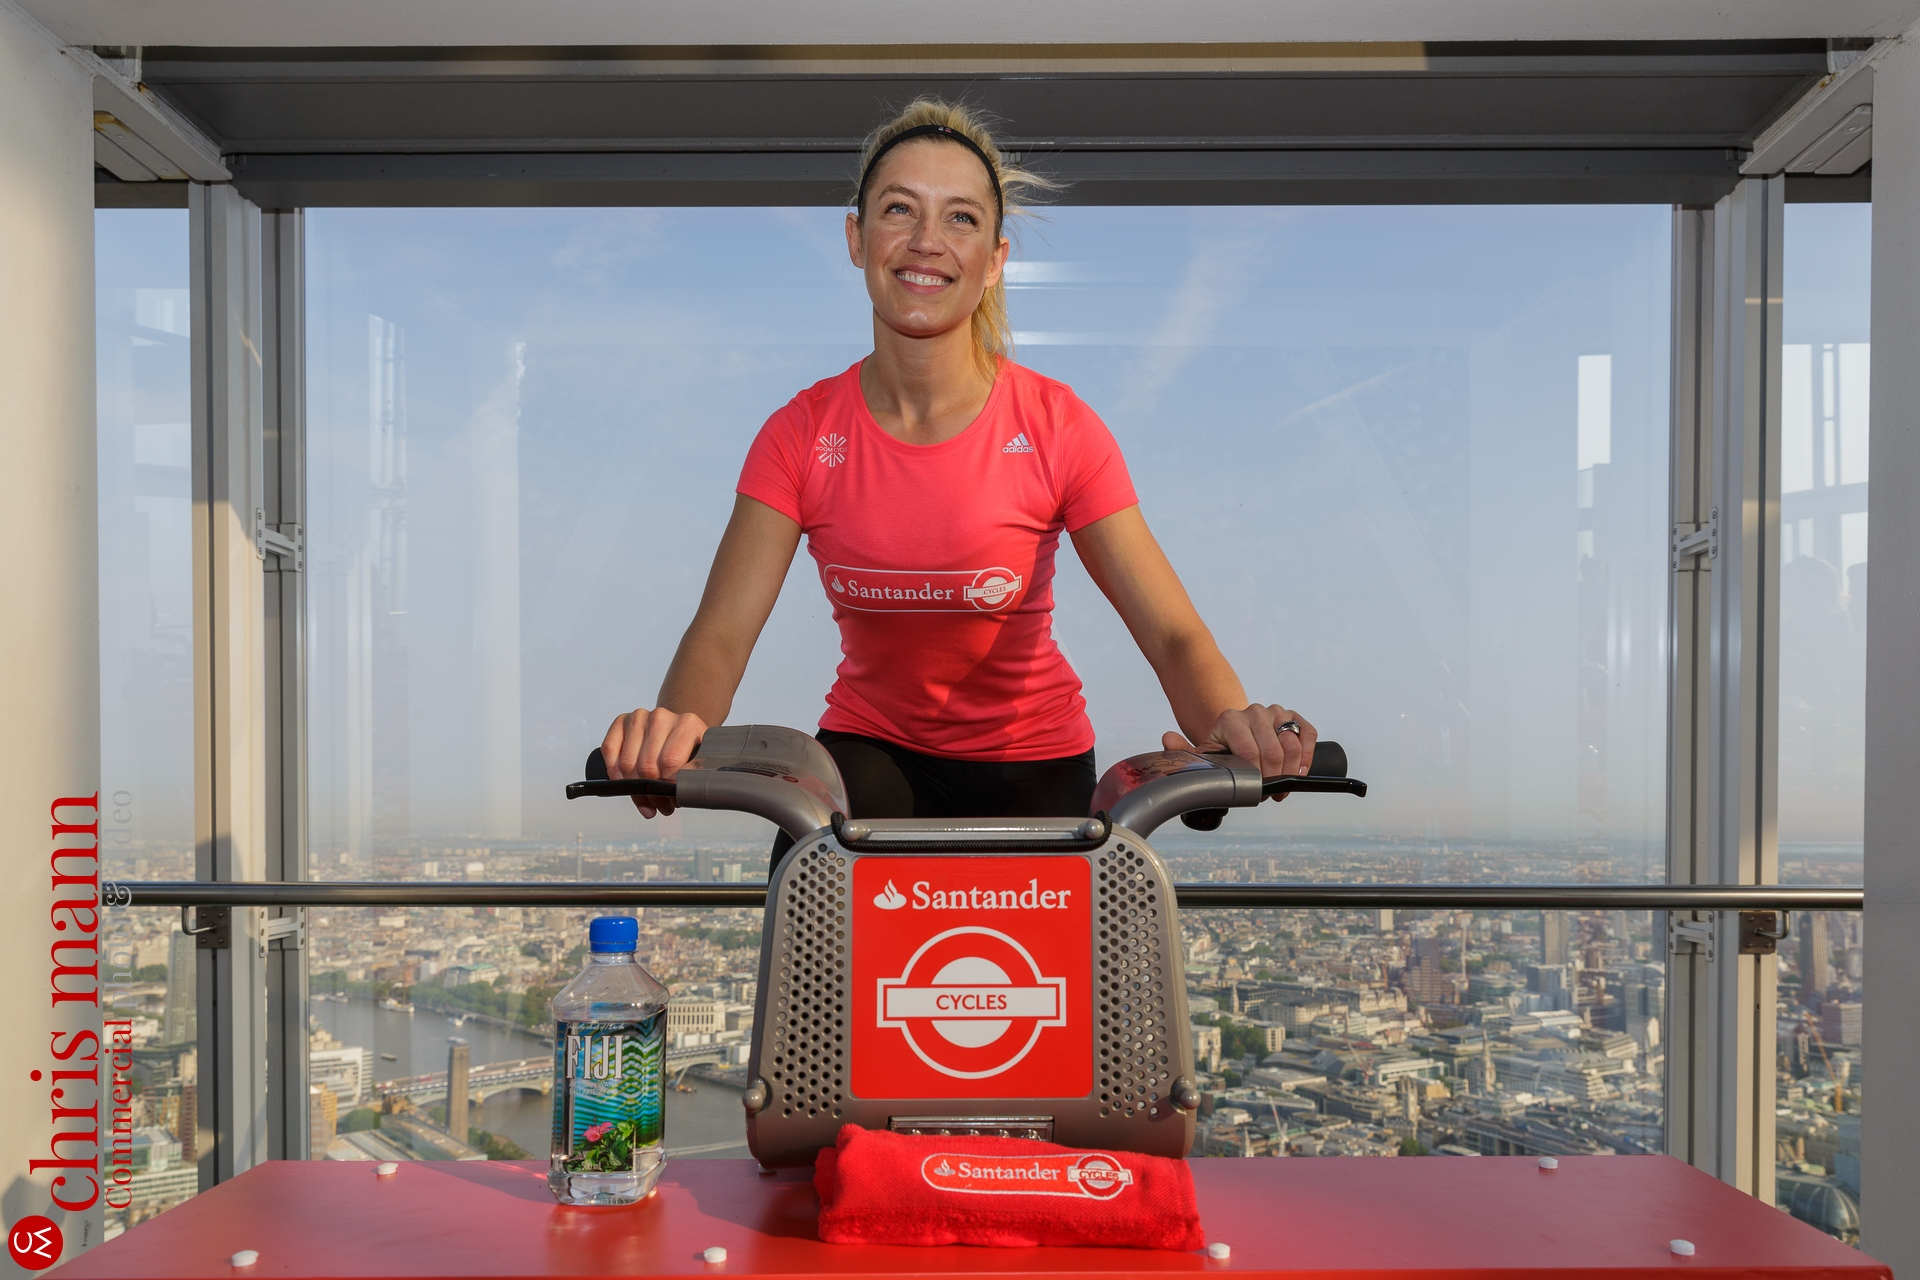 Santander-Cycles-spin-up-class-The-Shard-010